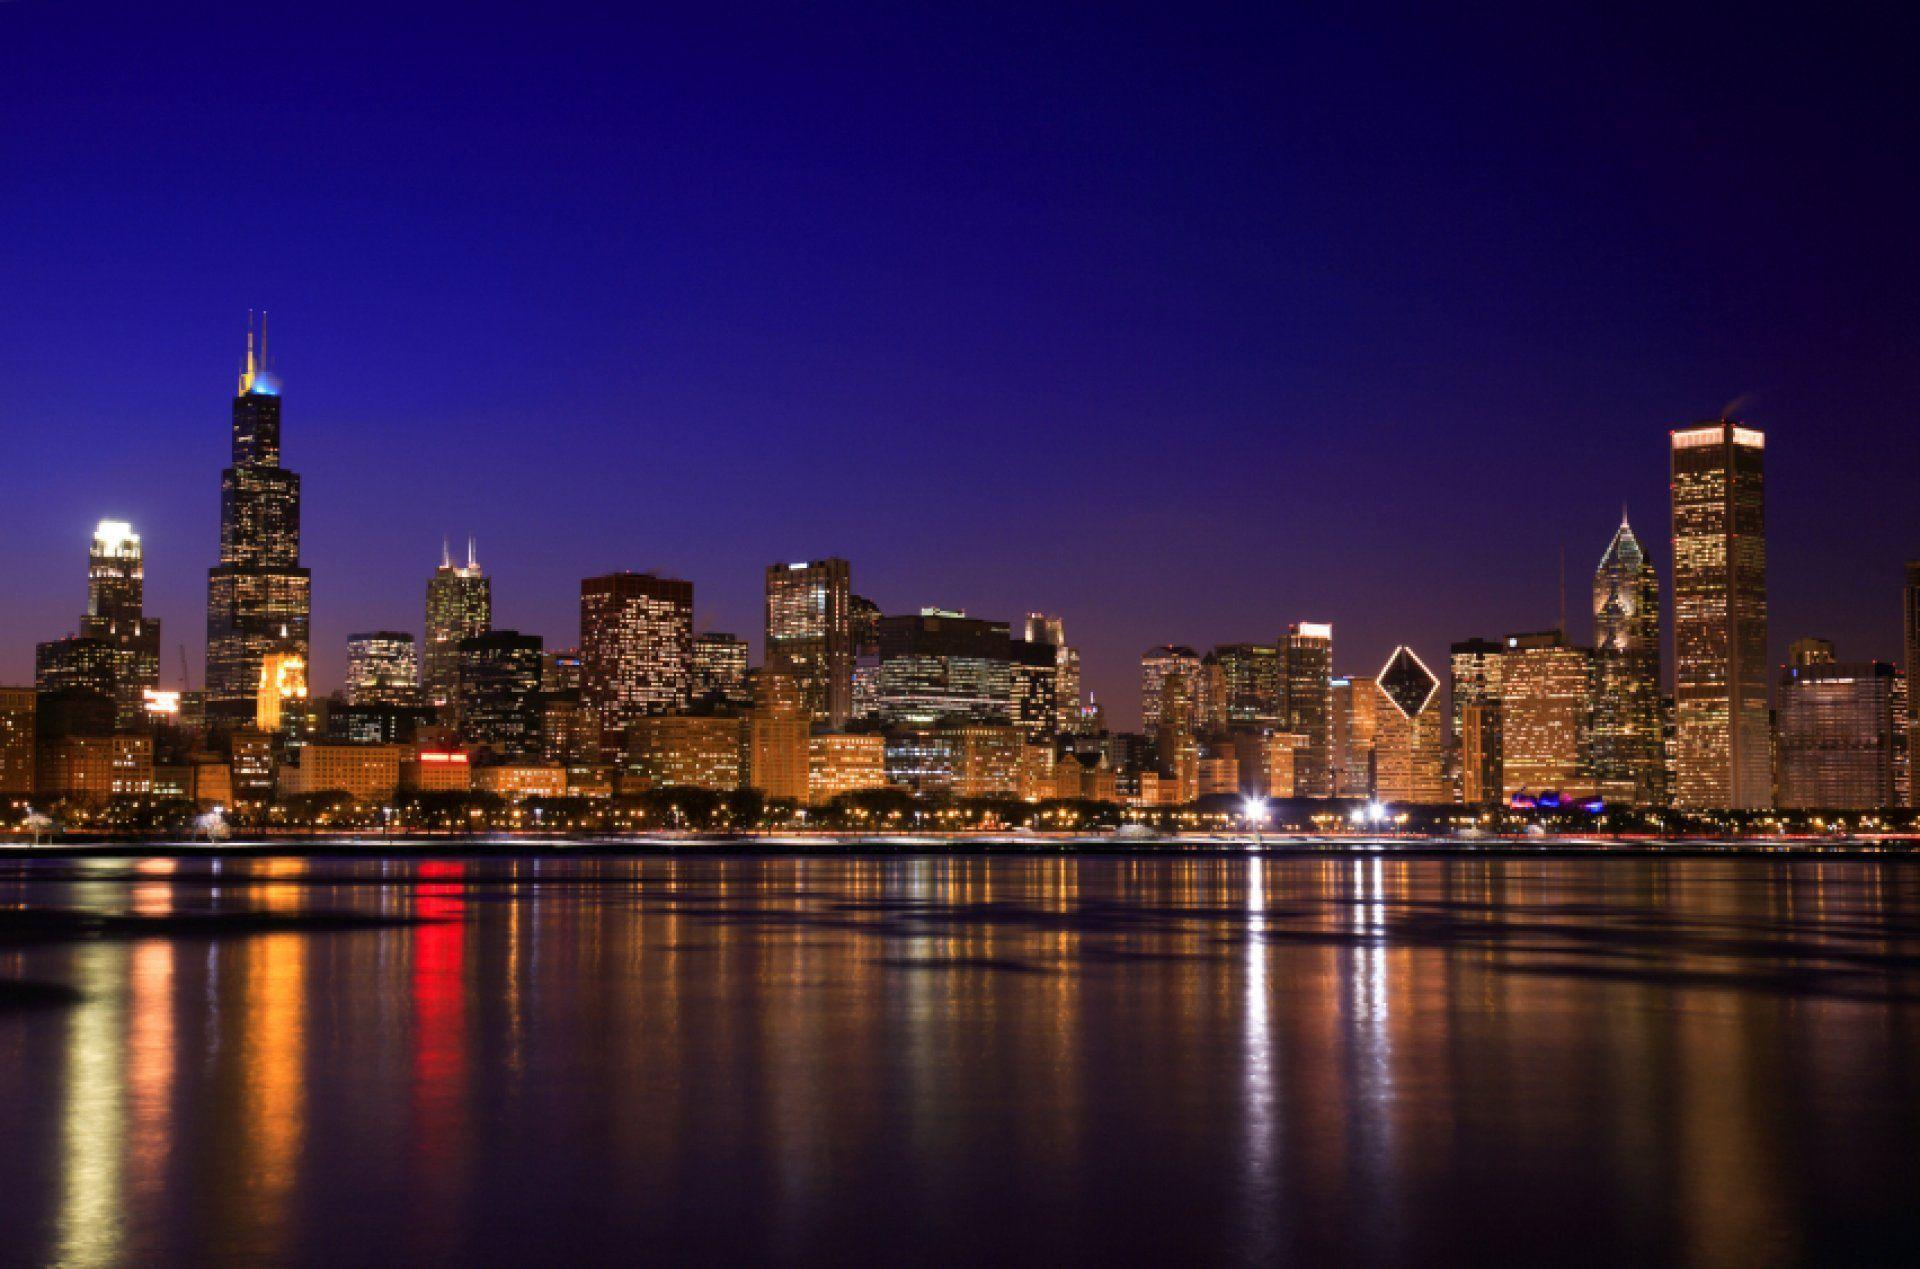 Chicago skyline wallpapers wallpaper cave - Chicago skyline wallpaper 1920x1080 ...